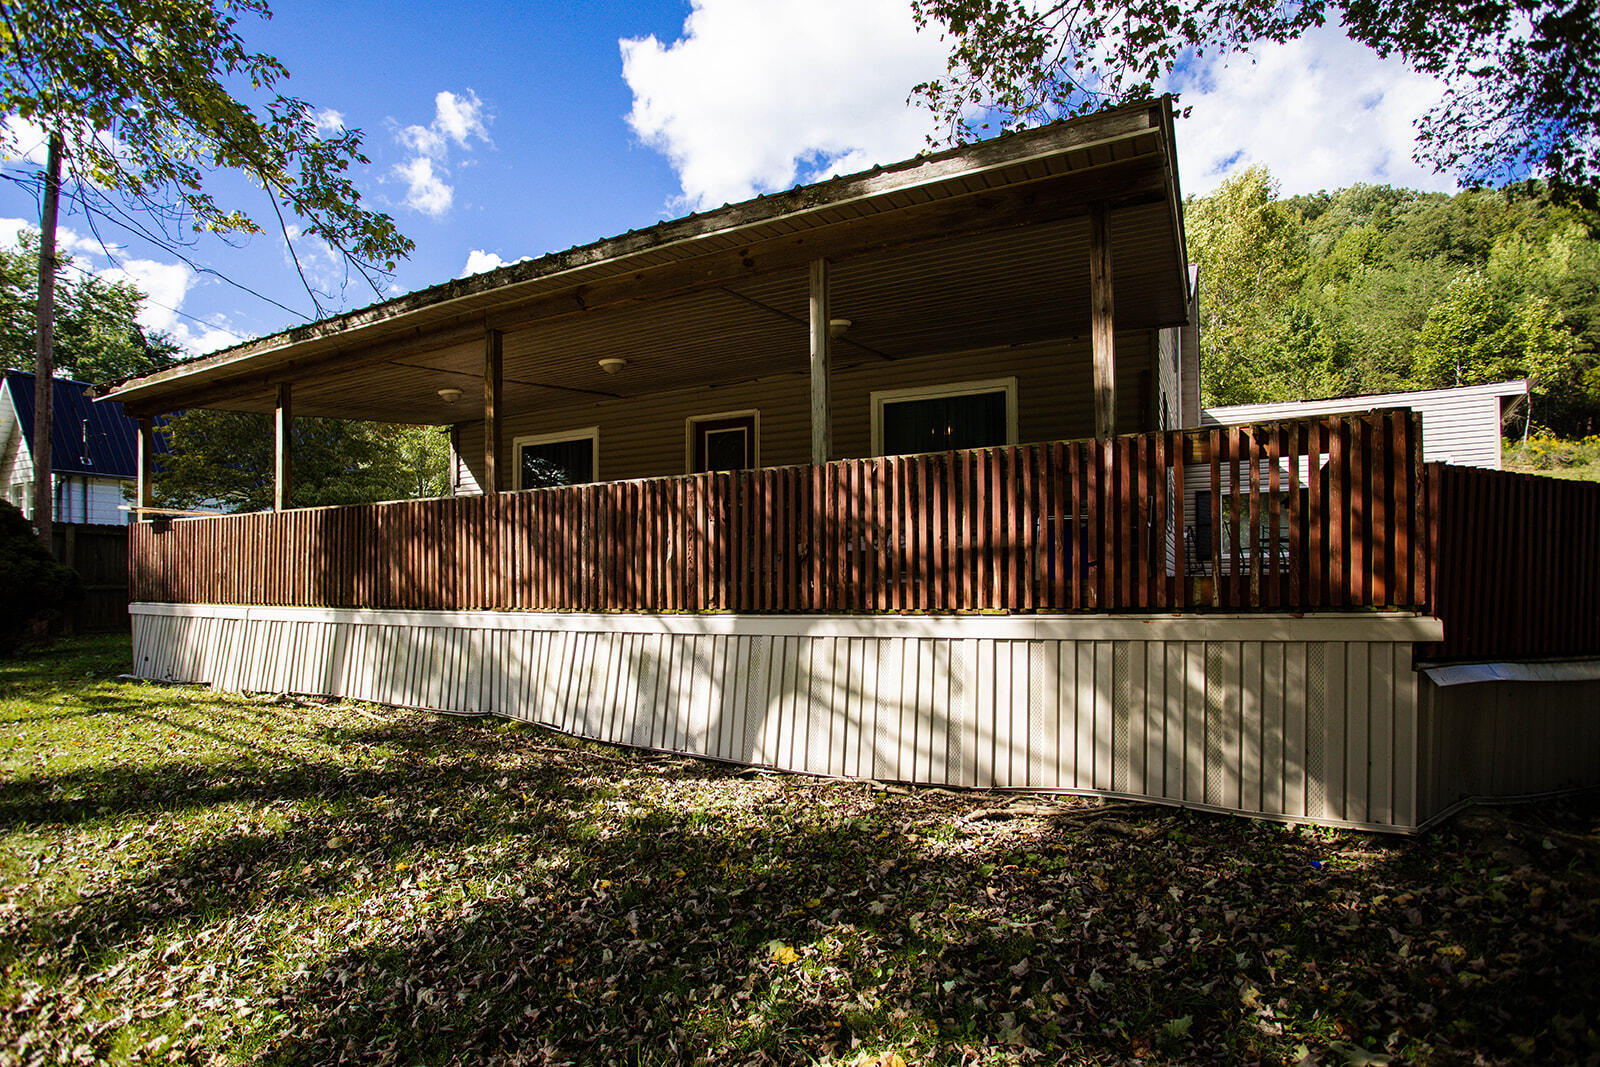 808 Dry Creek Road, Clearfield, KY 40313